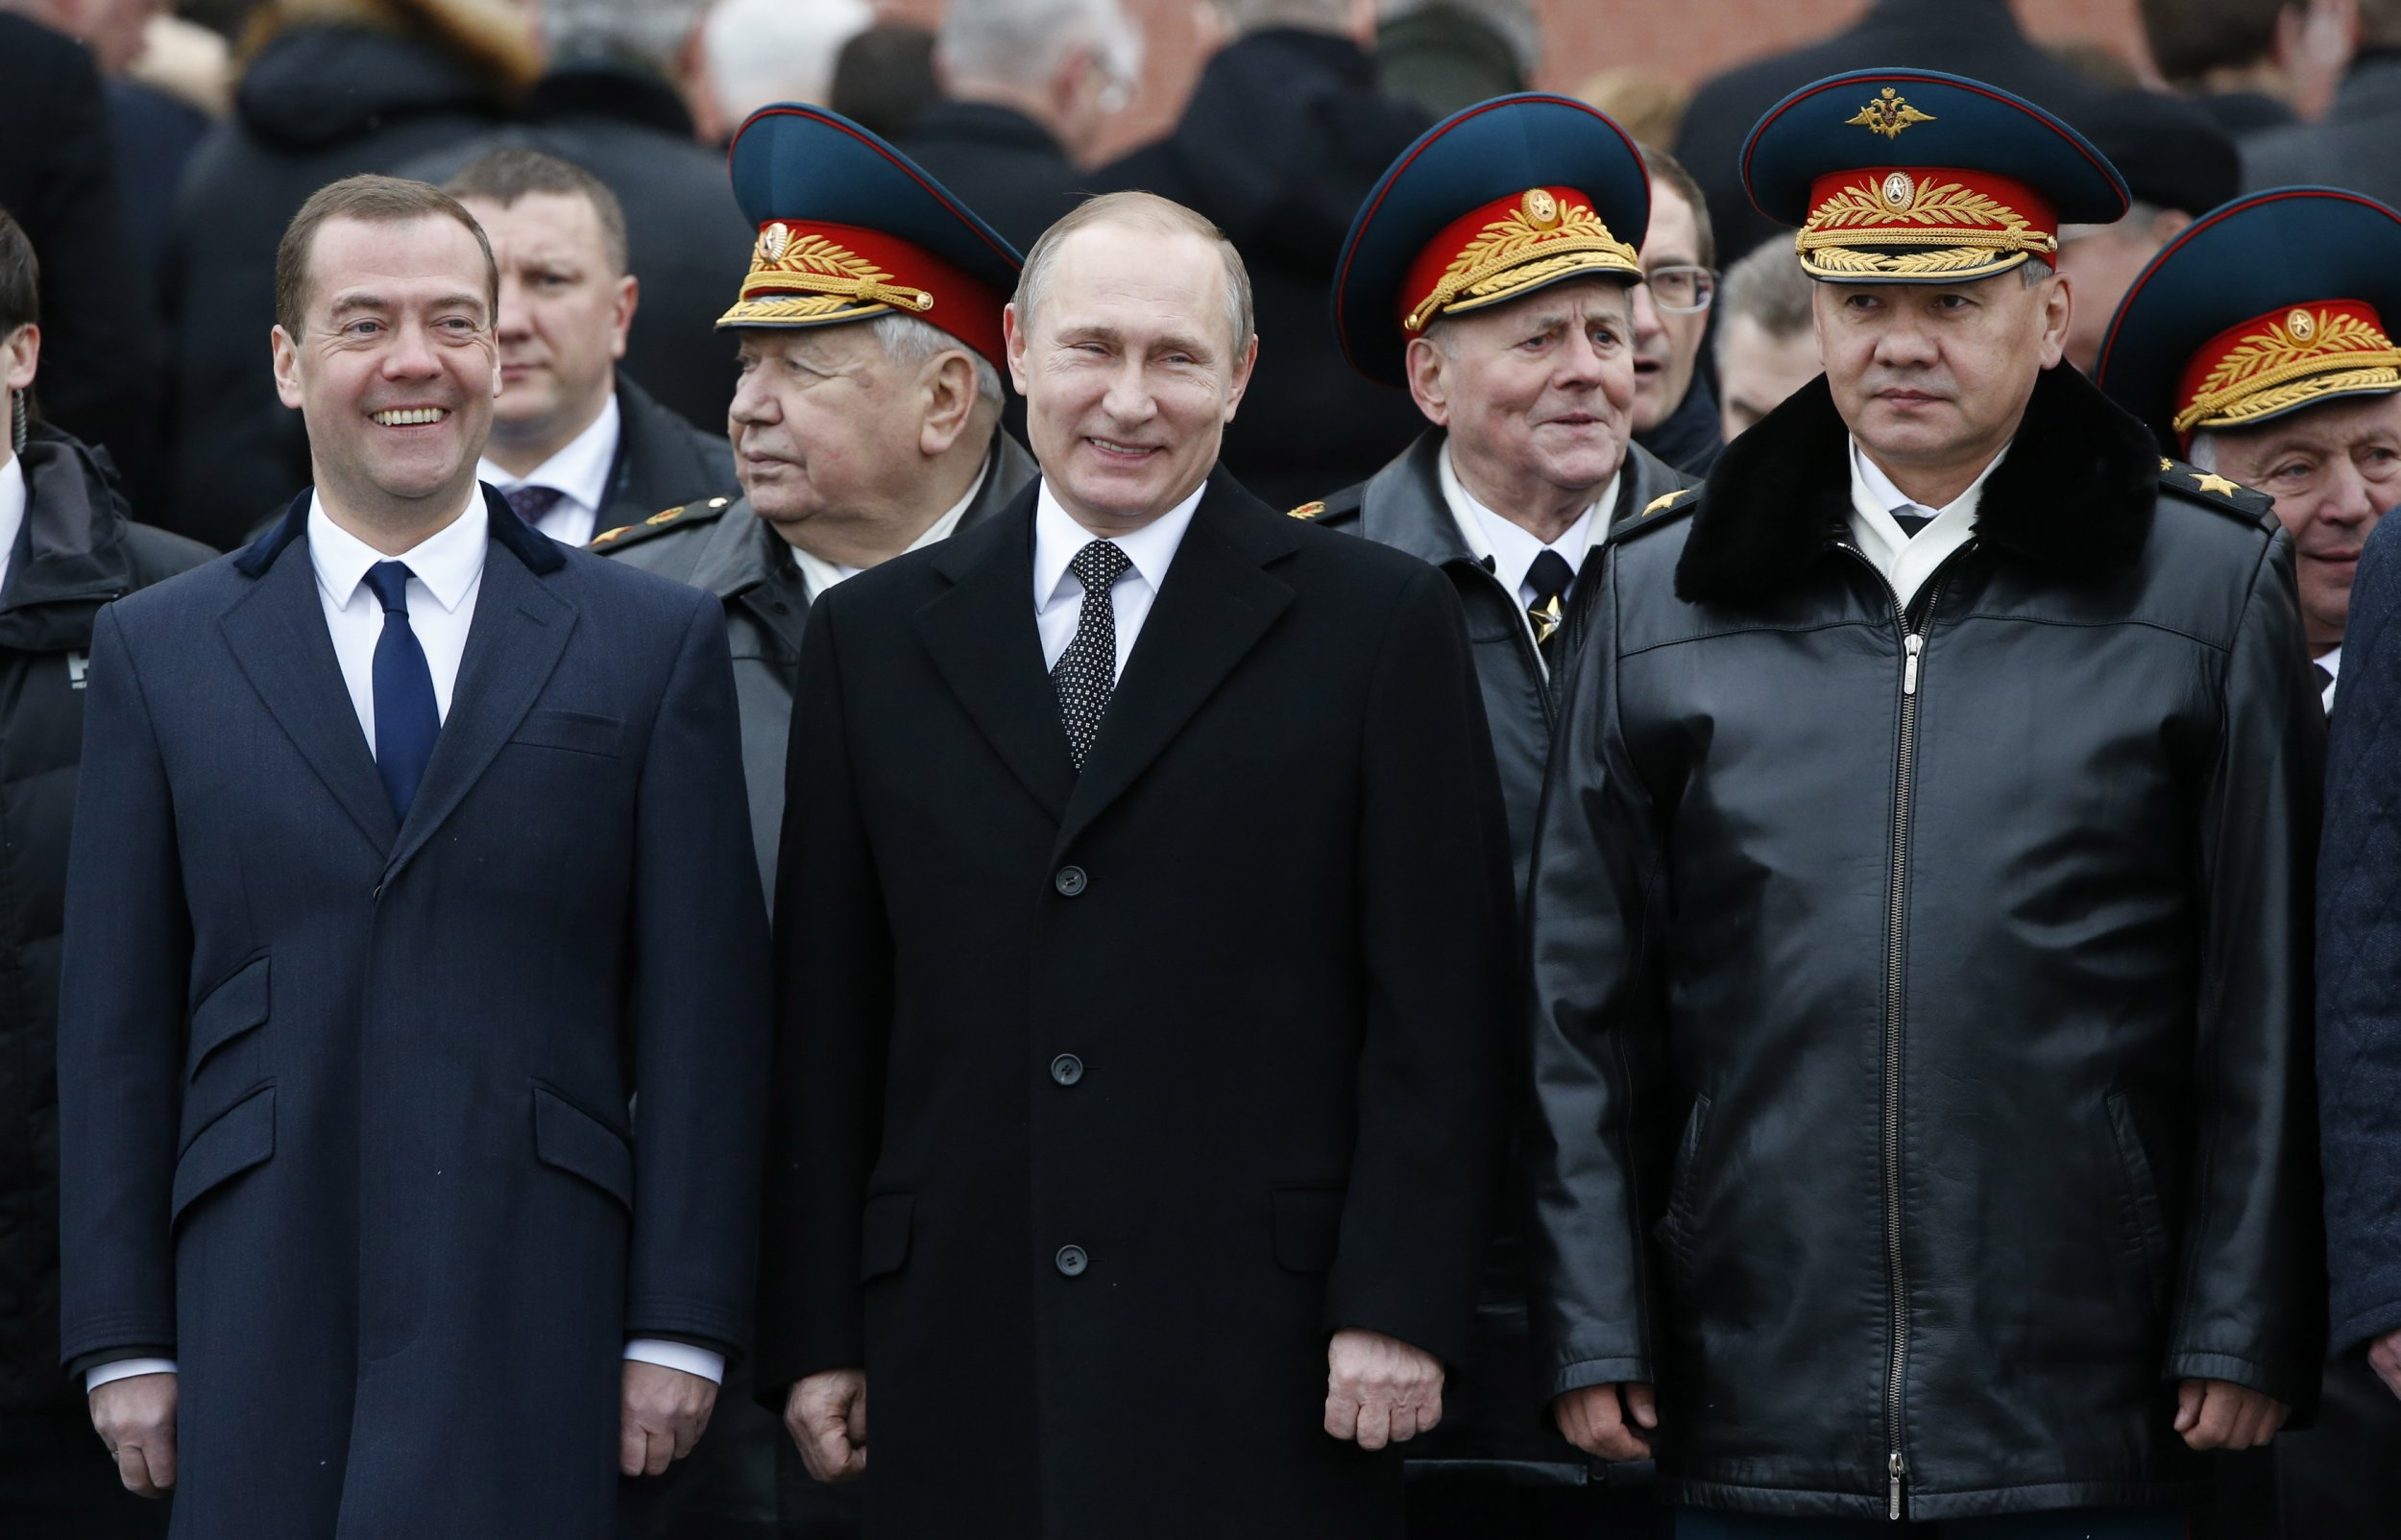 Putin Medvedev and Shoigu smile on the Red Square